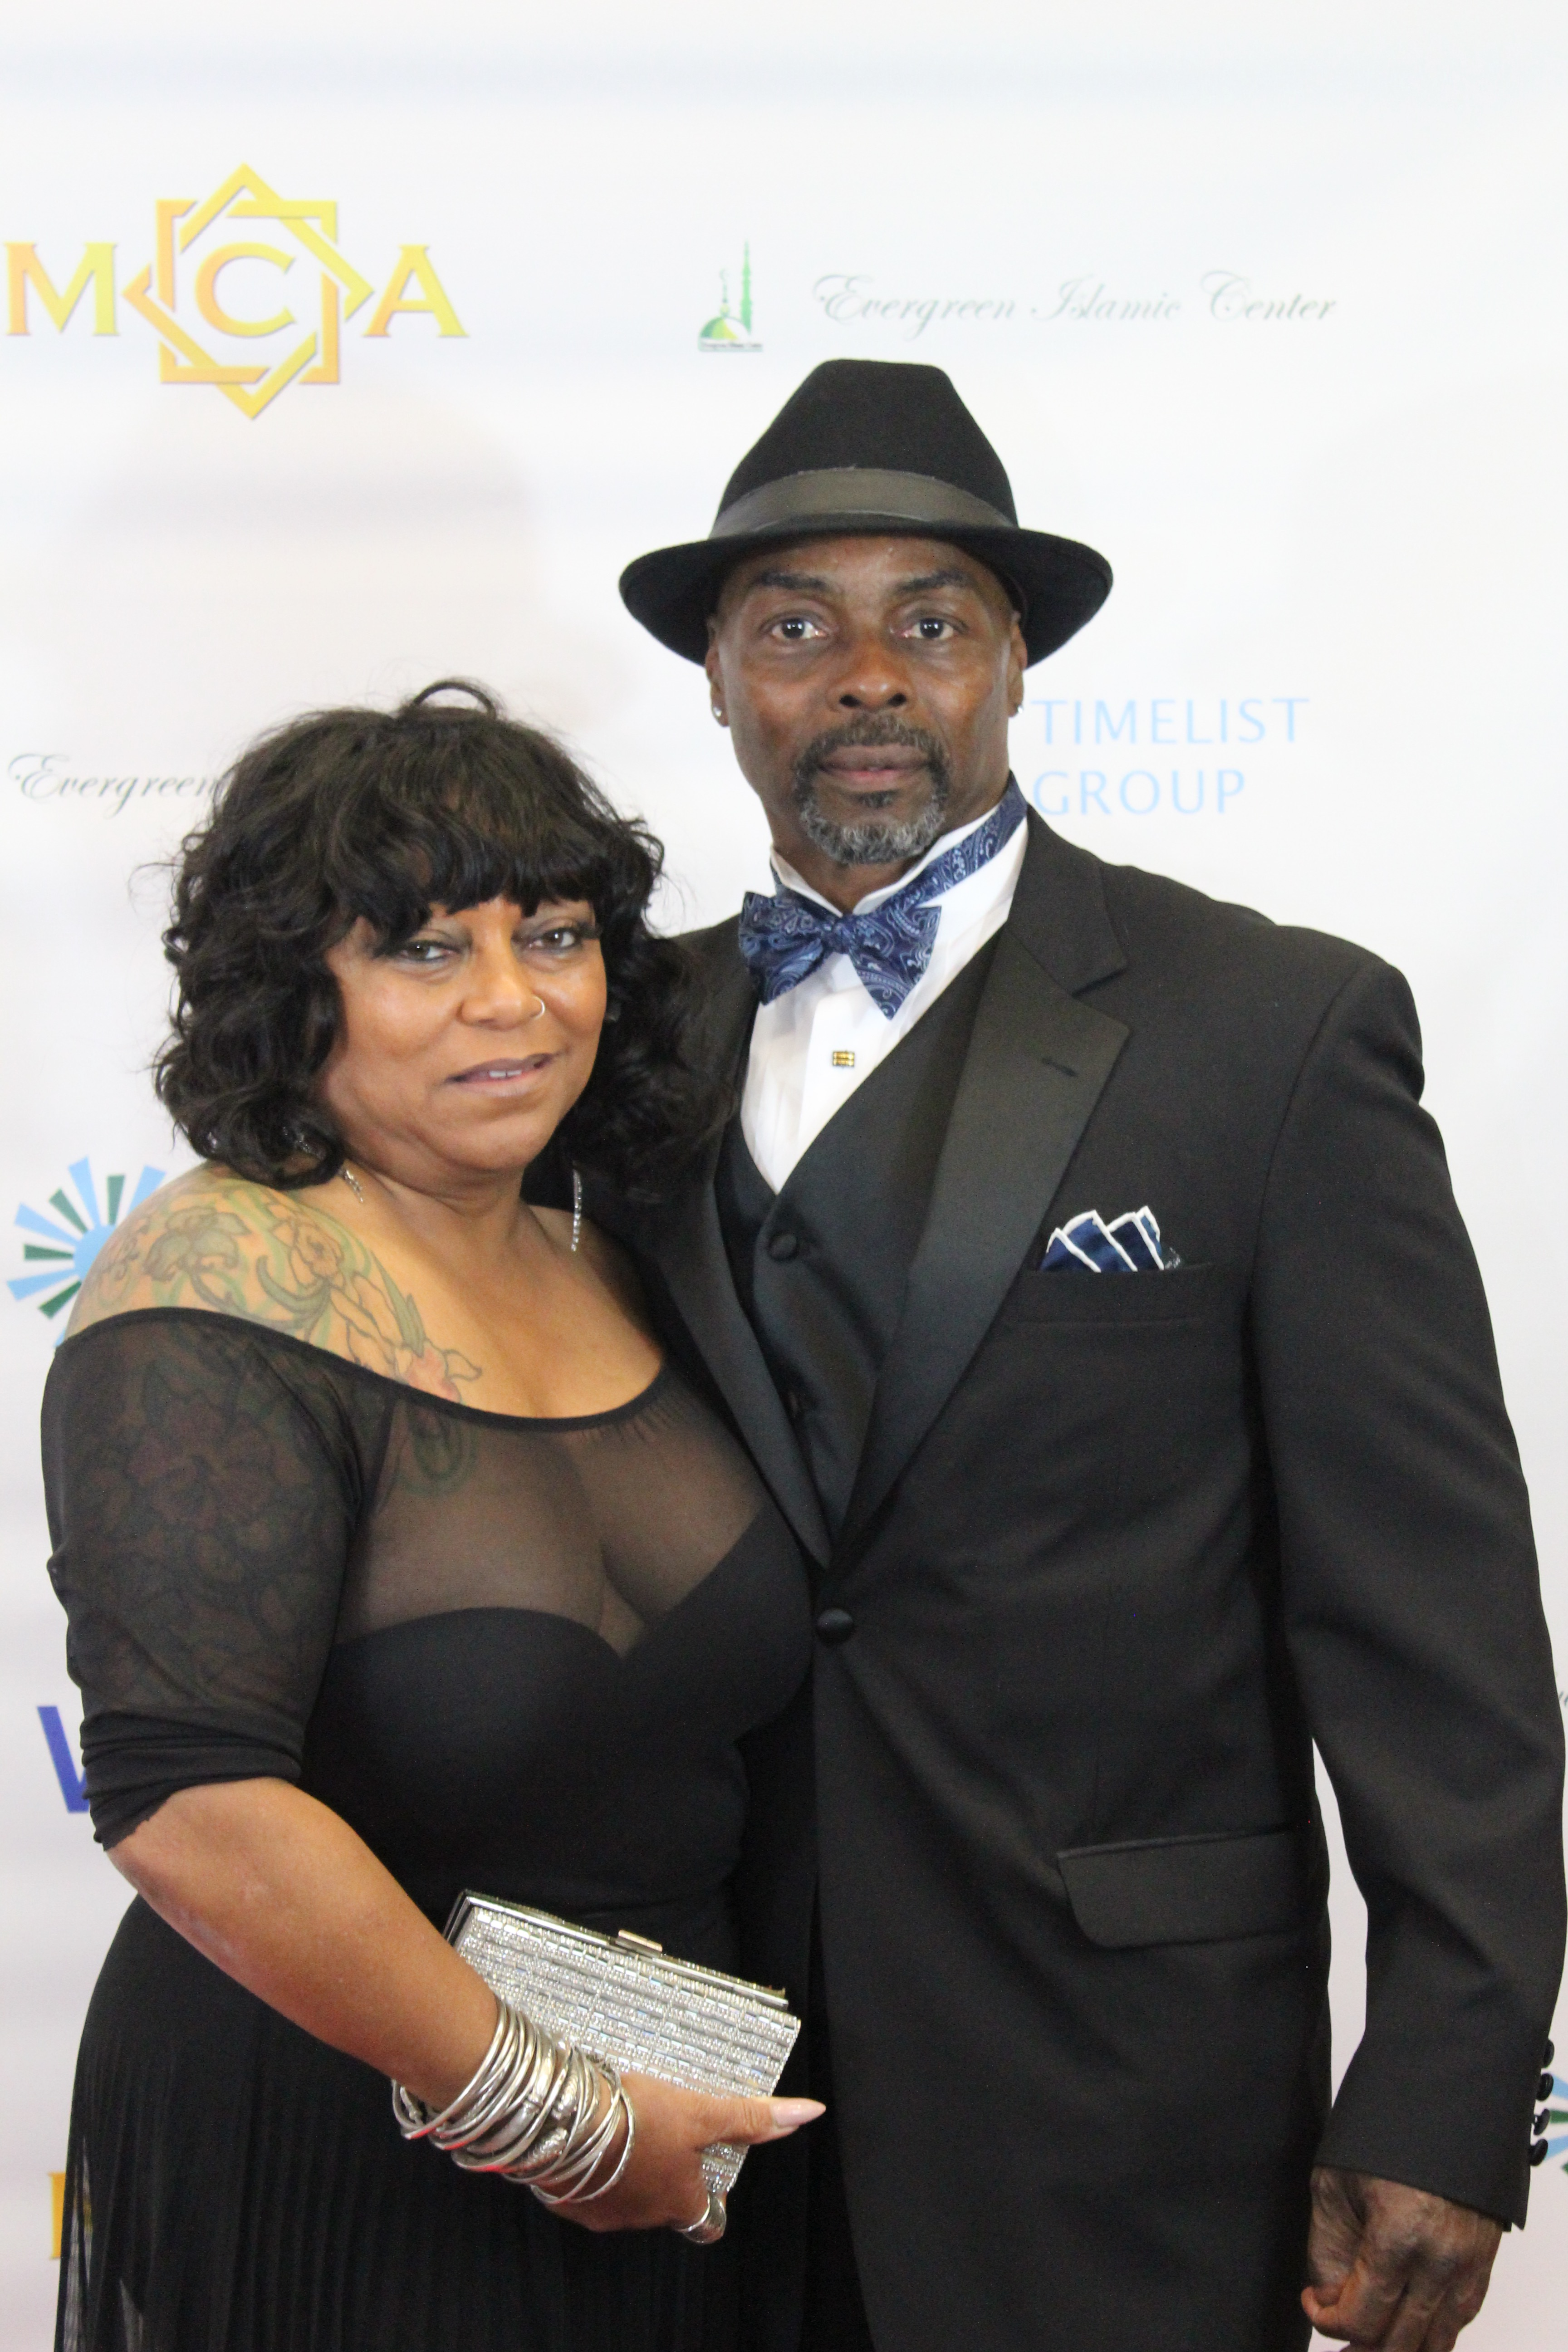 Harold Moore with Fiance'